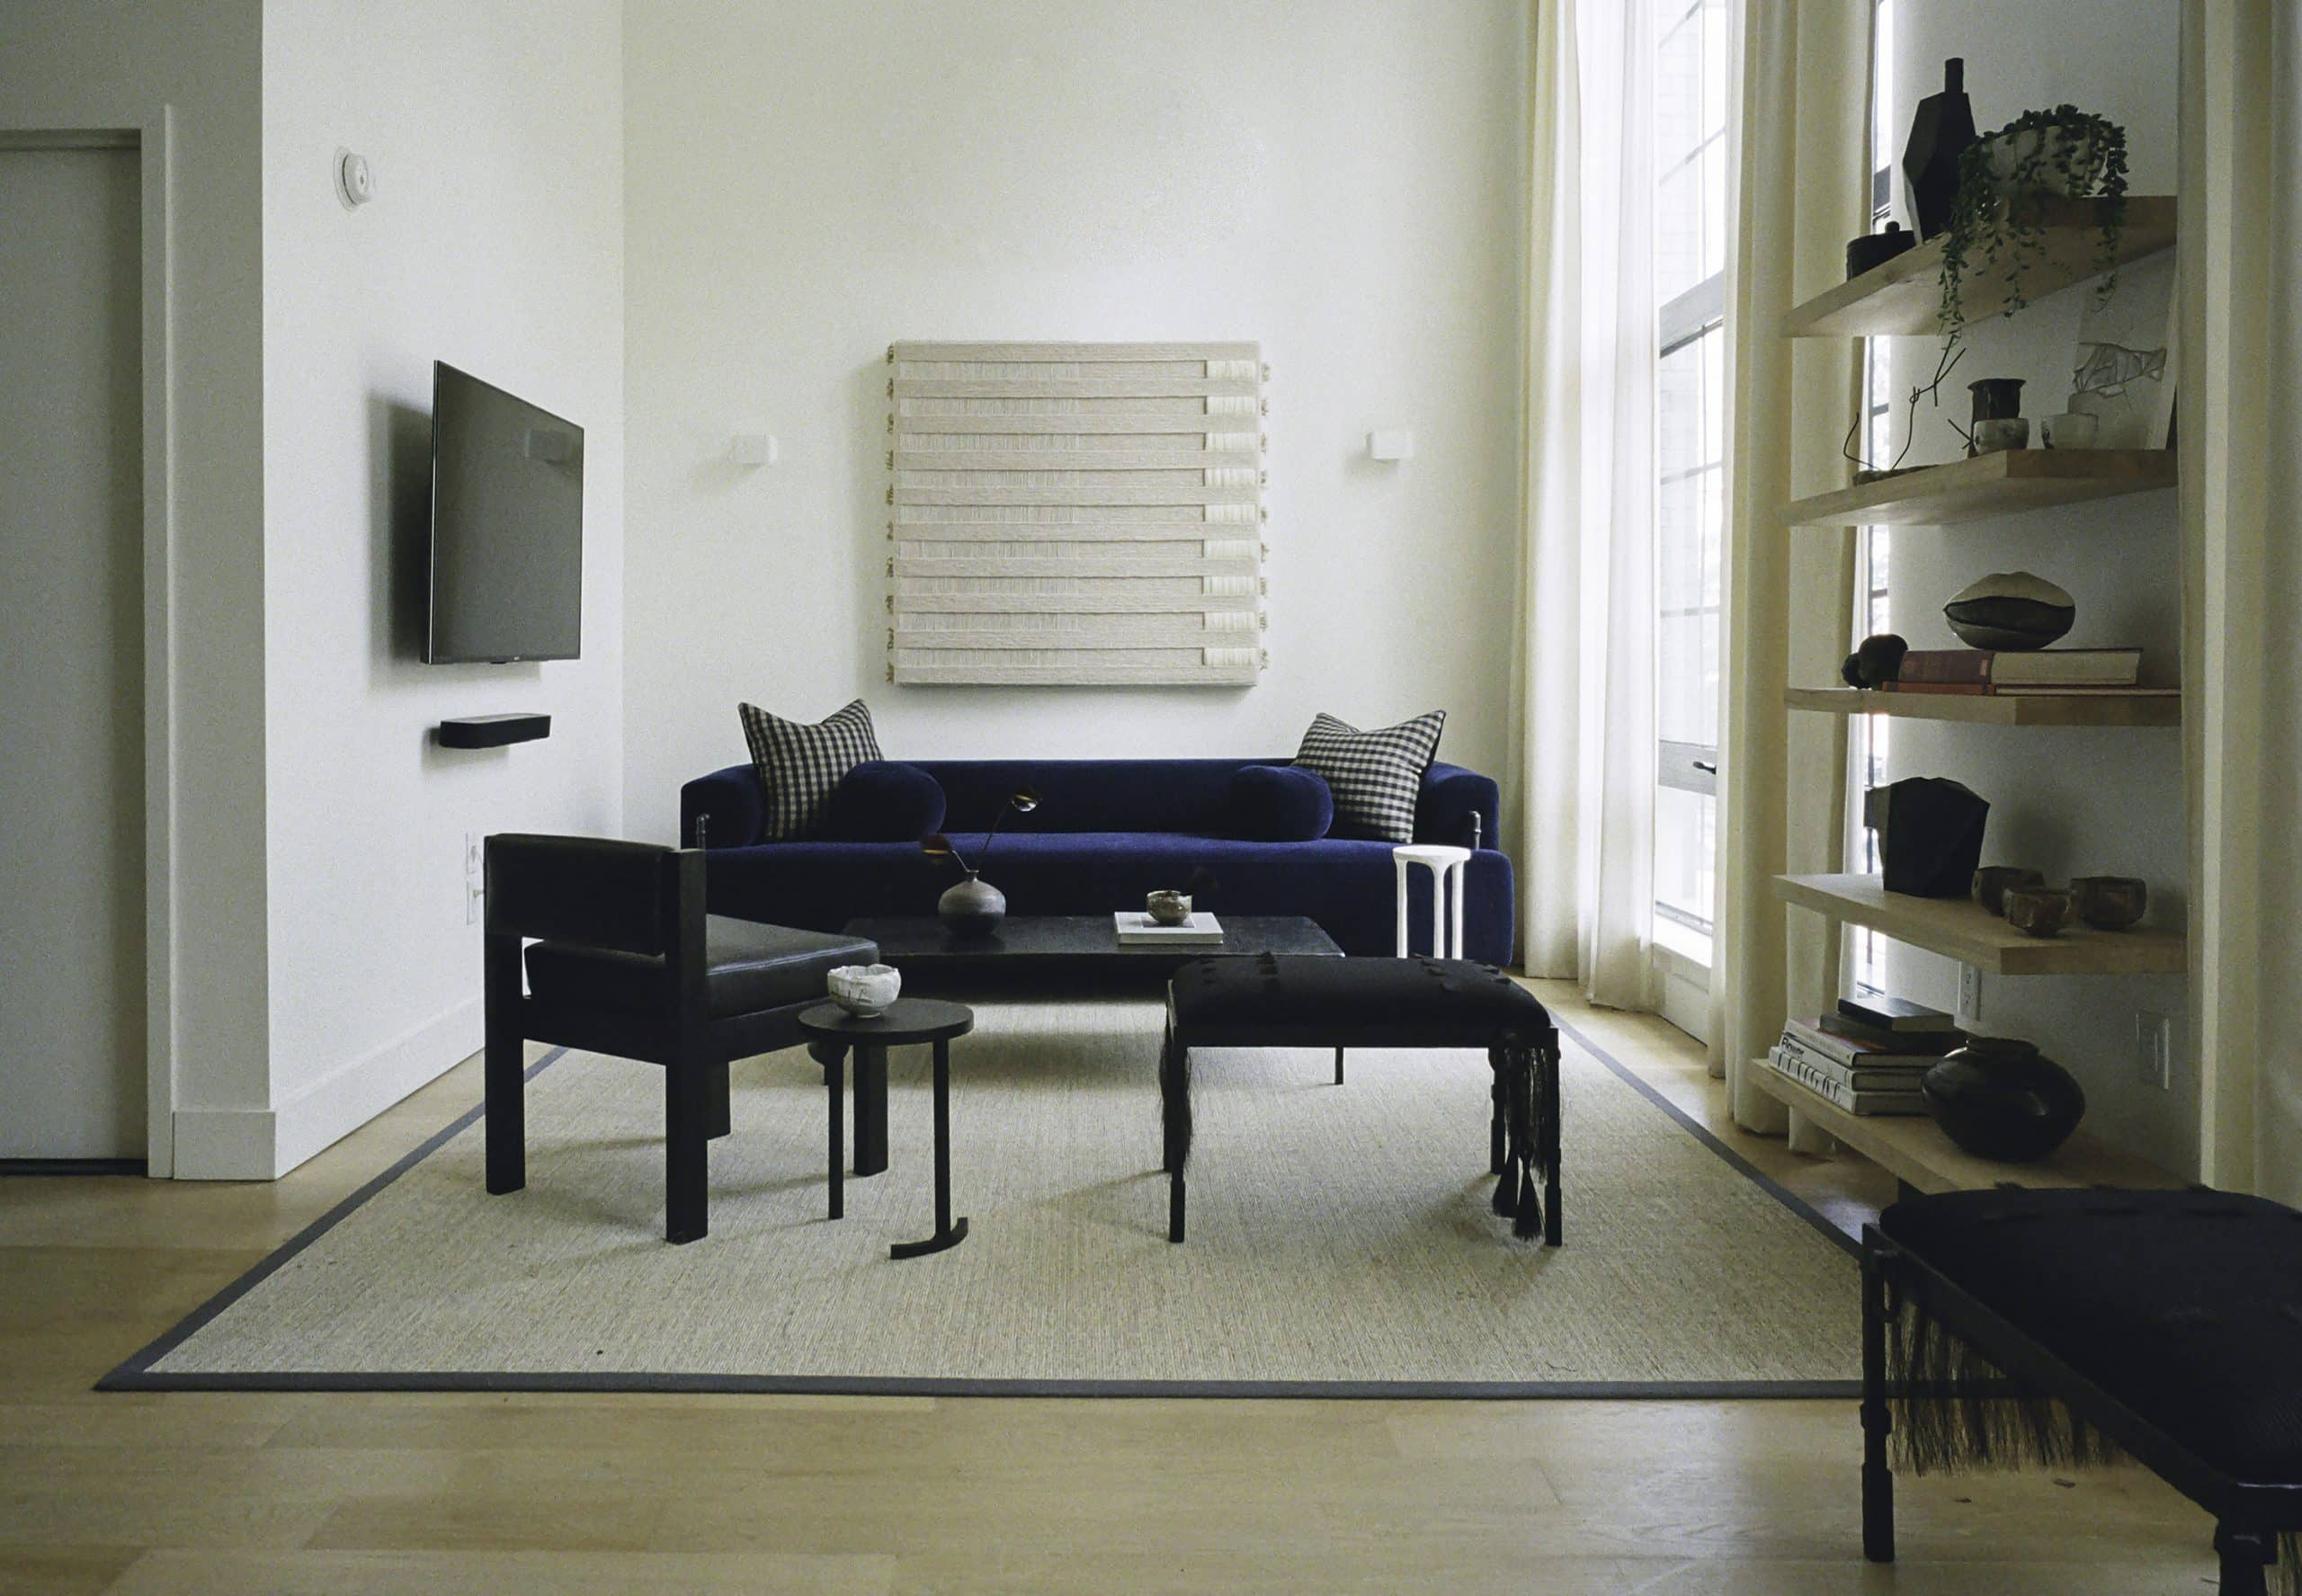 Szymanski designed the benches, tables and mohair sofa in the living room.